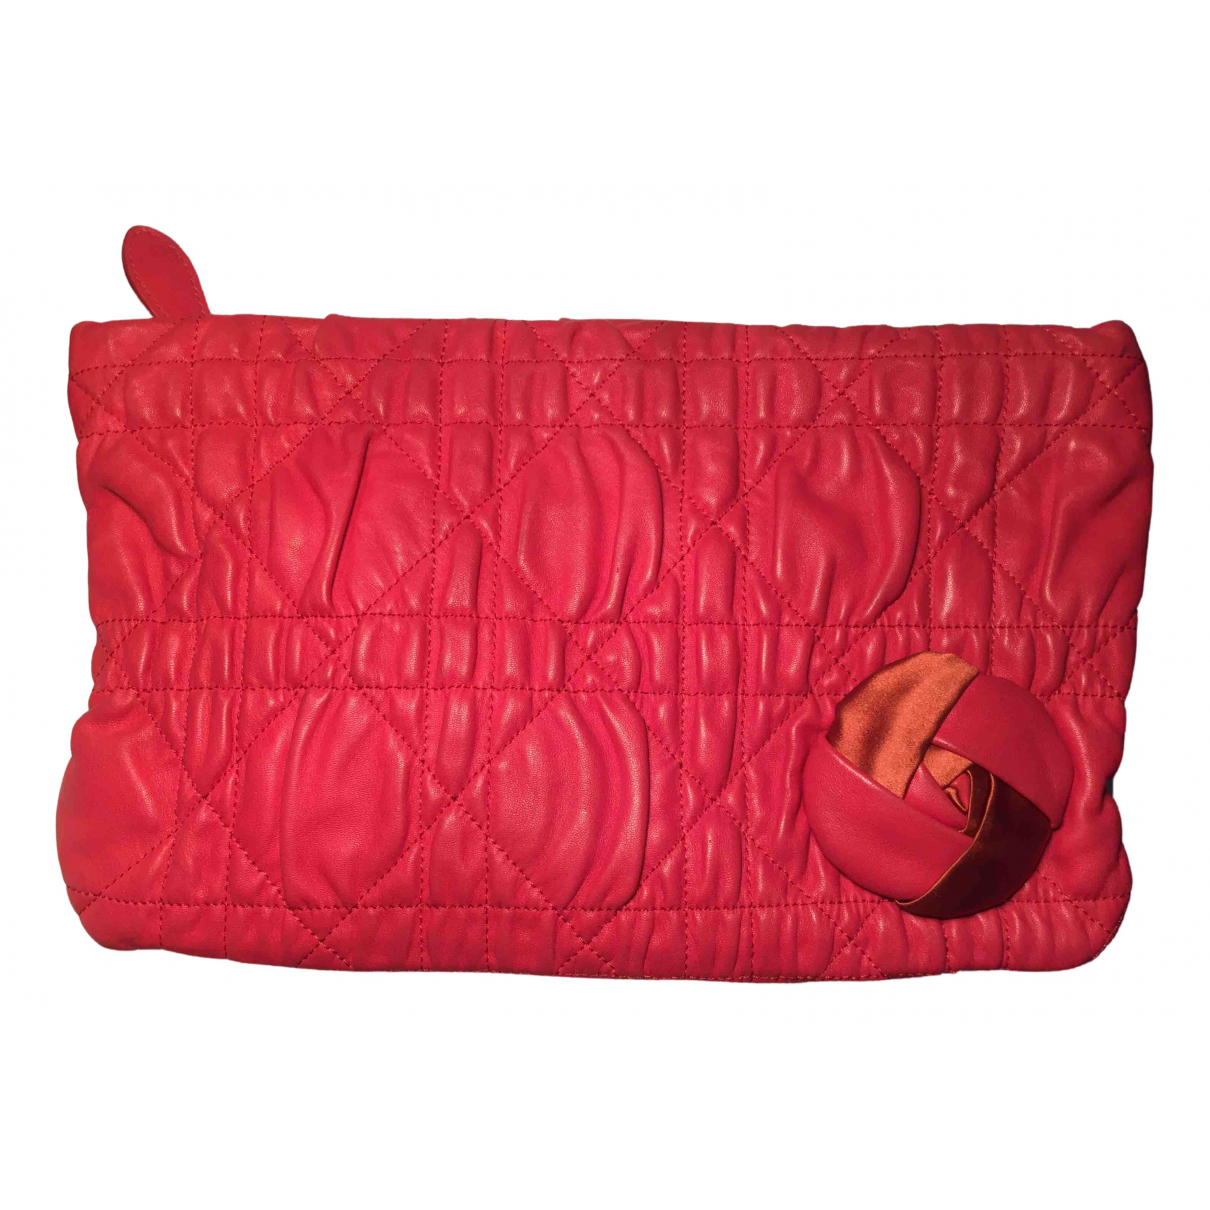 Dior \N Clutch in  Rot Leder